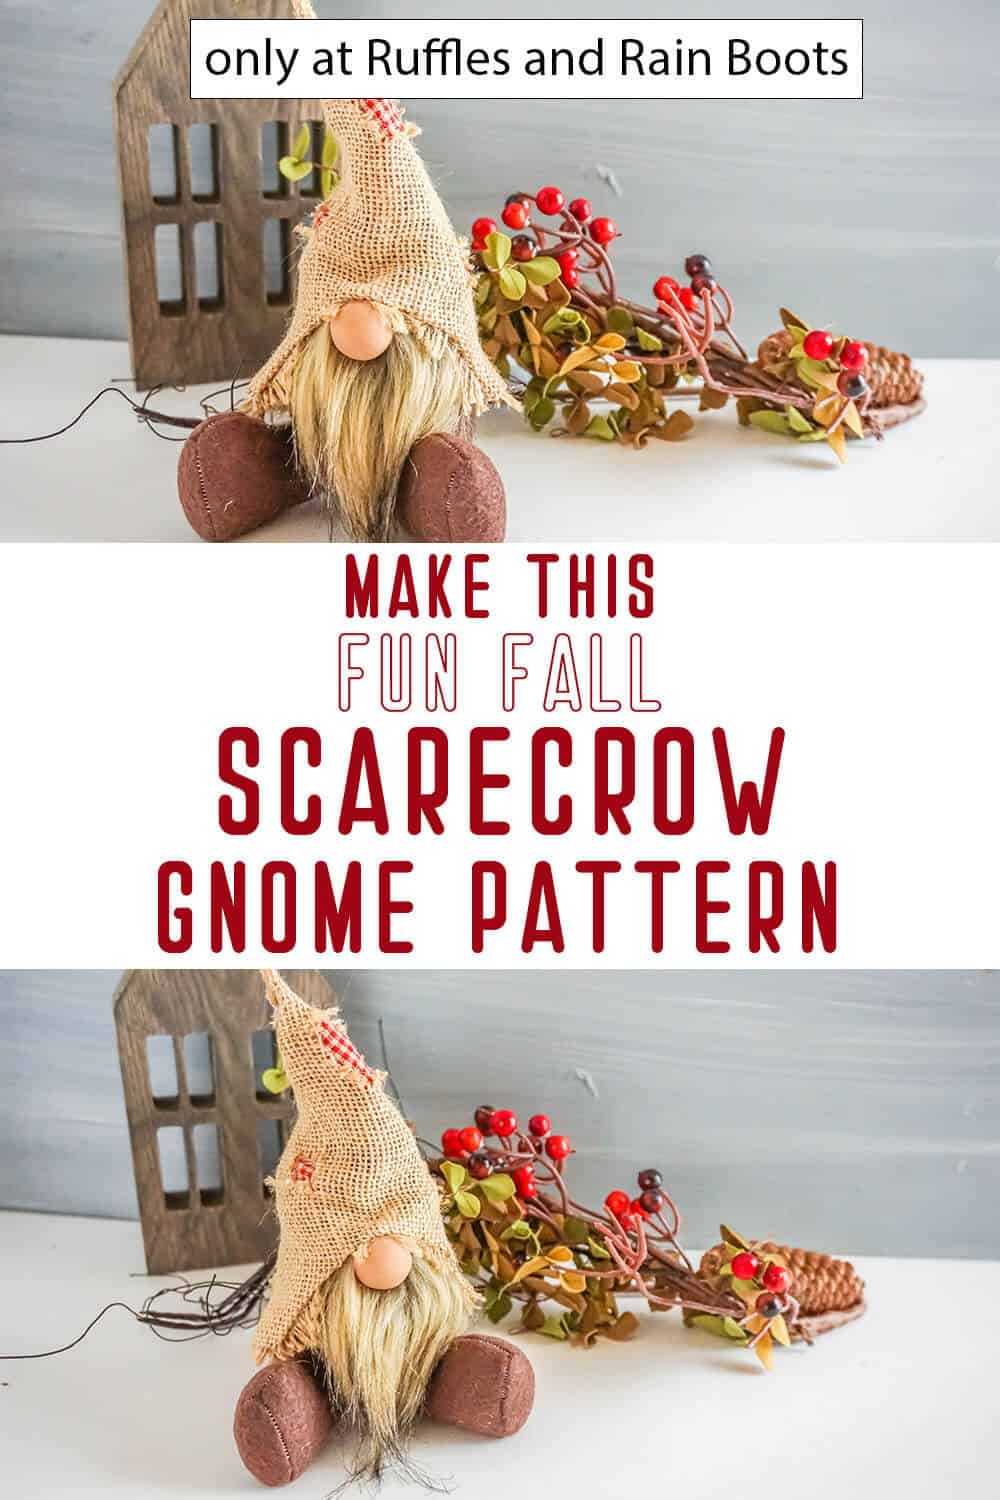 photo collage of scarecrow gnome pattern for autumn with text which reads make this fun fall scarecrow gnome pattern